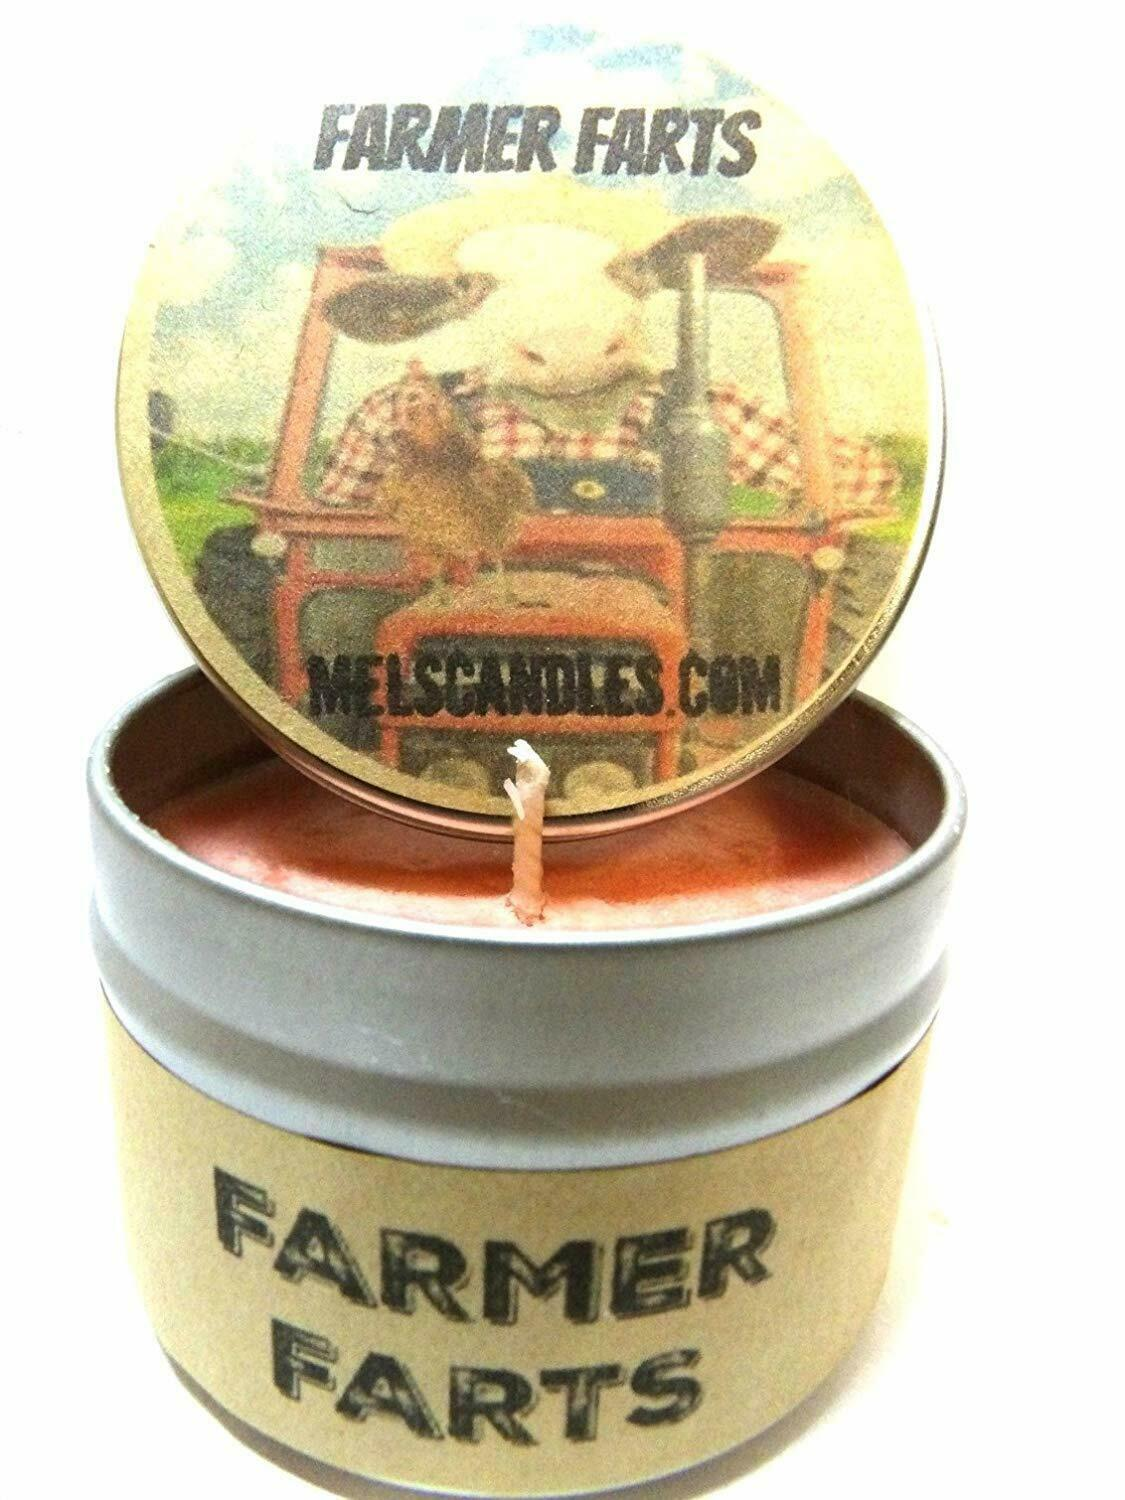 Farmer Farts (Fruity Type Aroma)- 4oz All Natural Soy Candle Tin - Approximate B - $8.89